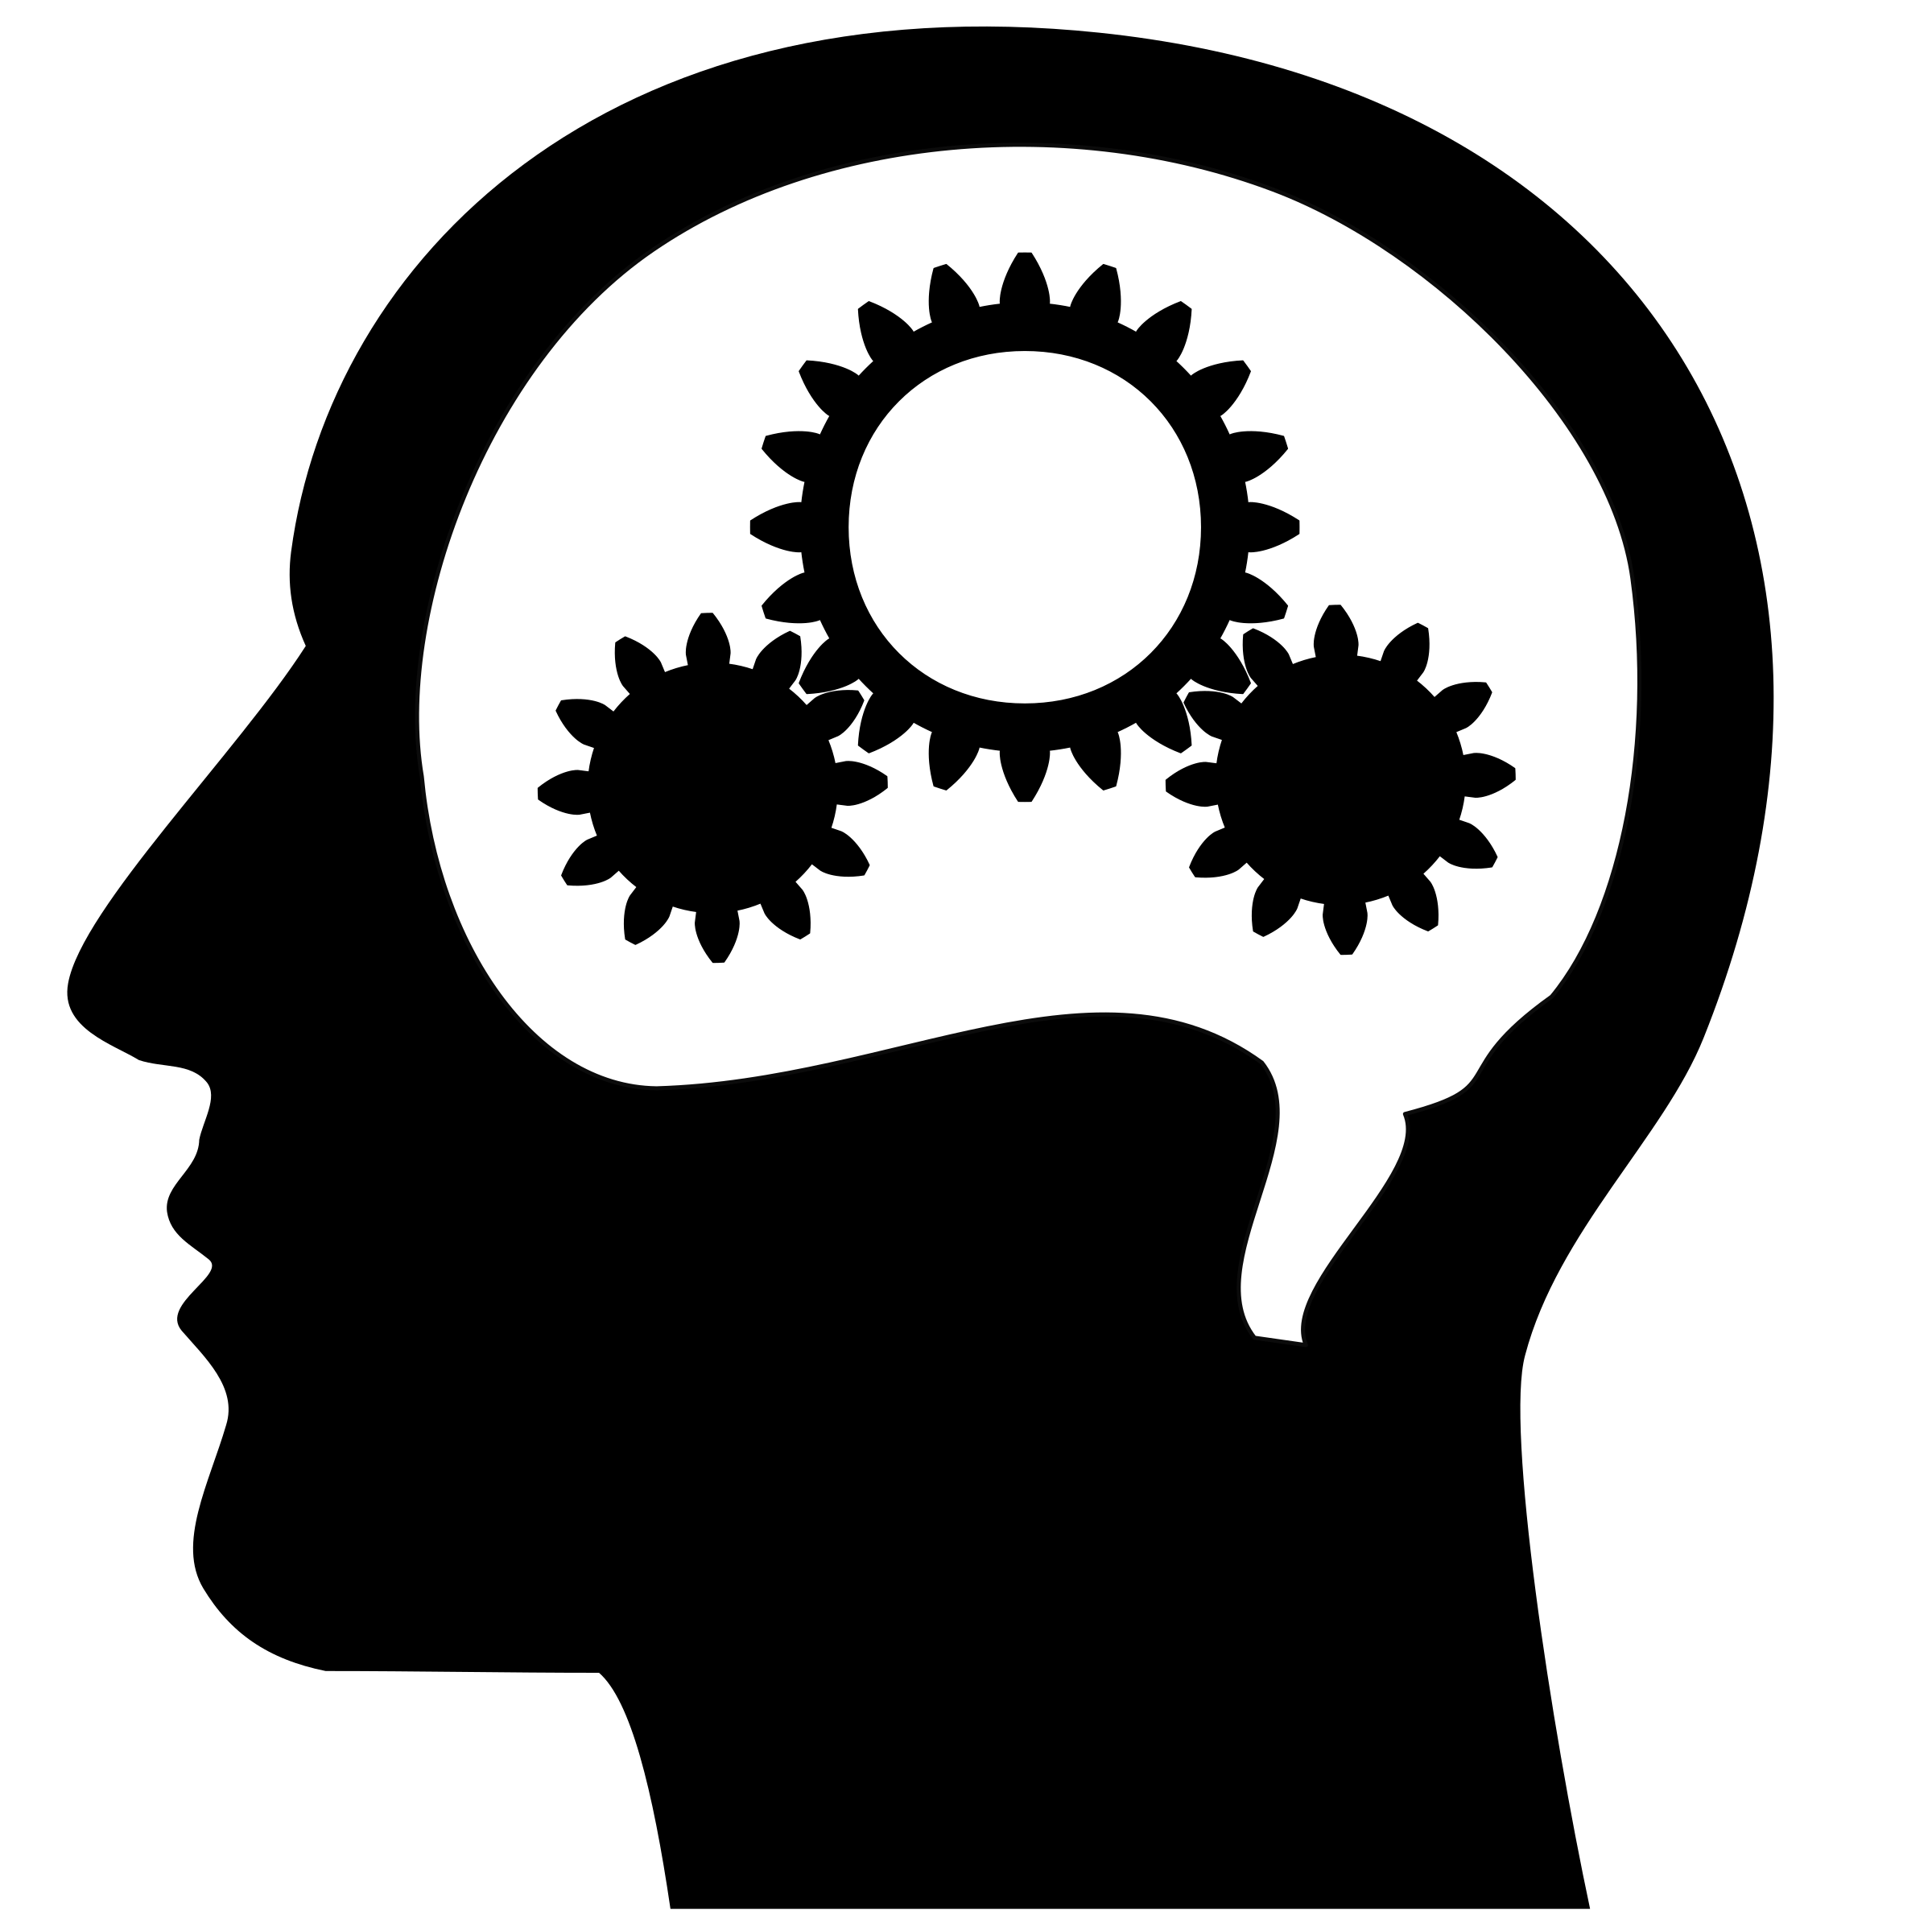 Thinking brain machine vector clipart image.